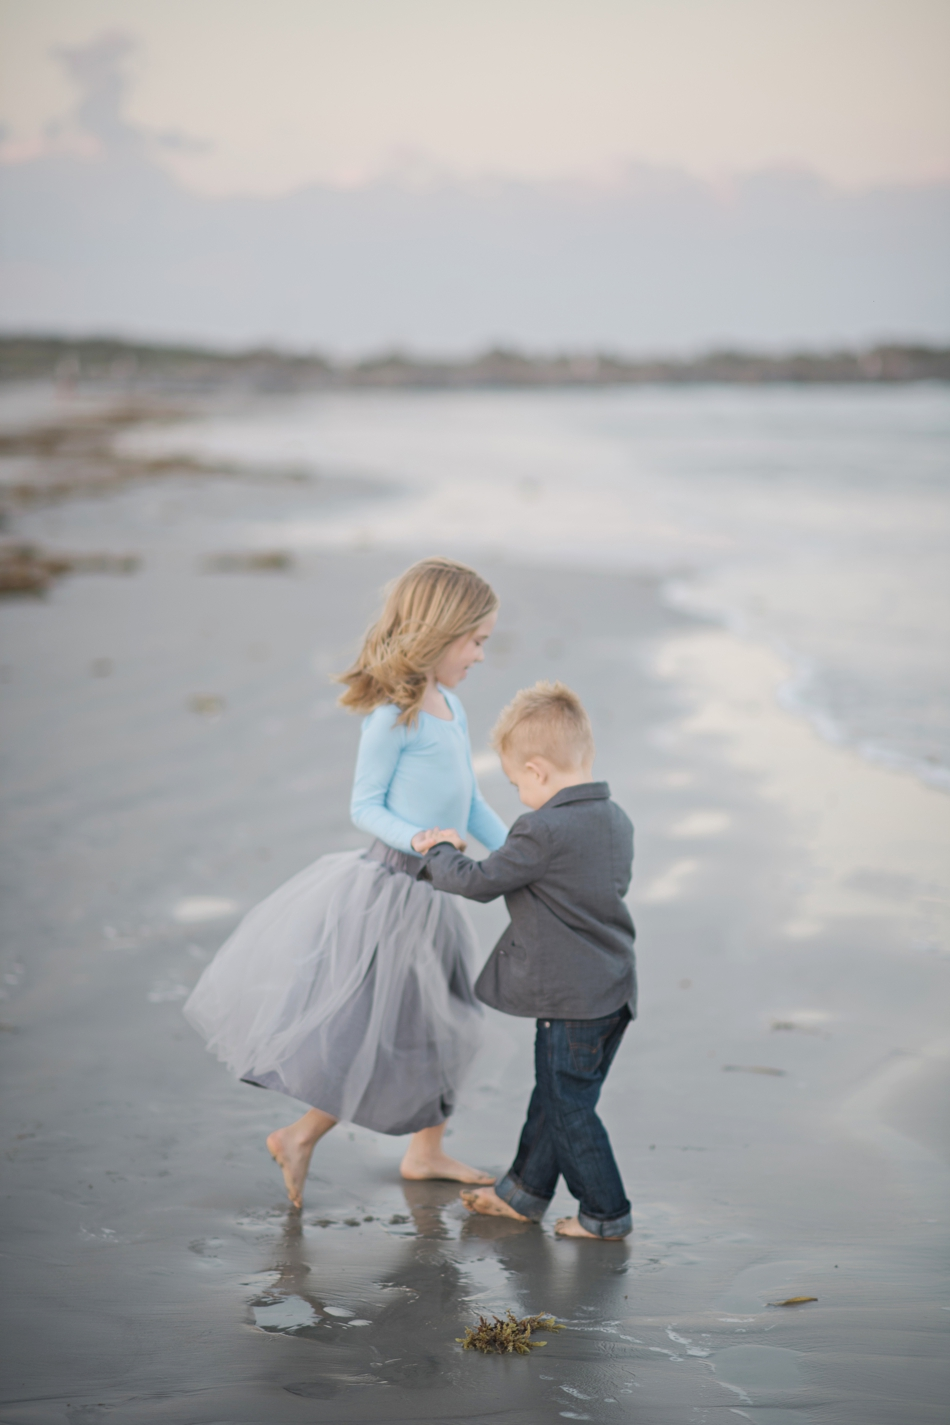 Best kids photography - beach kids photos